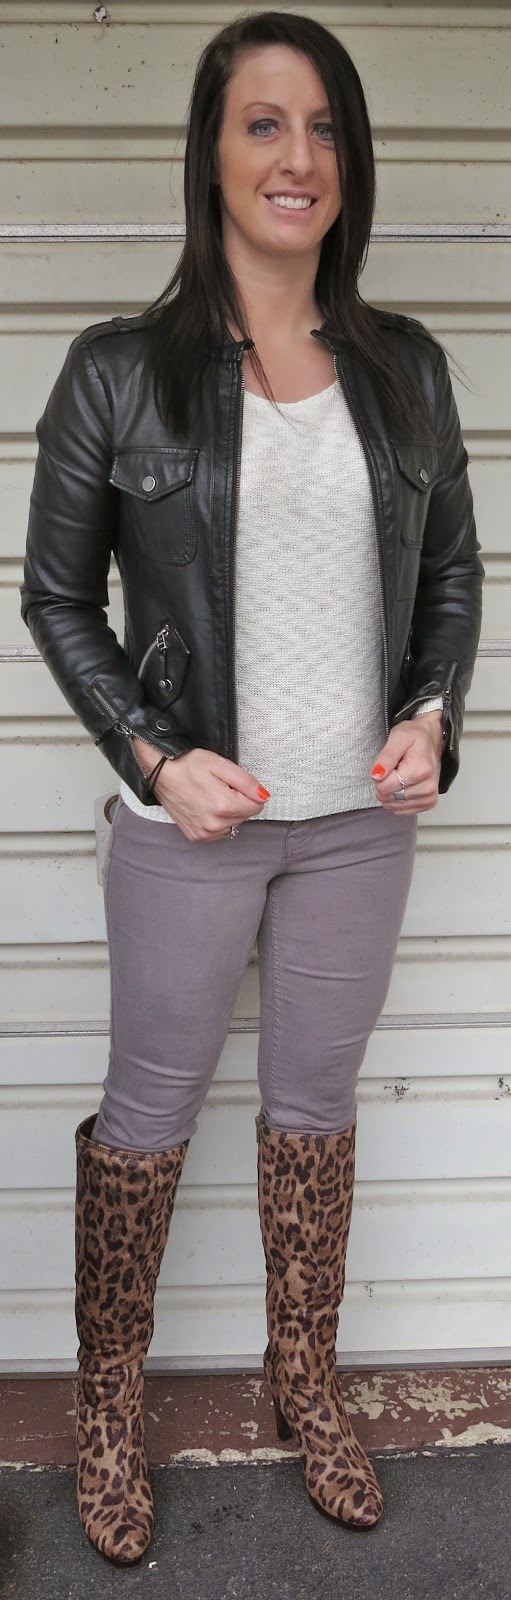 leopard boots, leather jacket, grey jeans, fashion, outfit